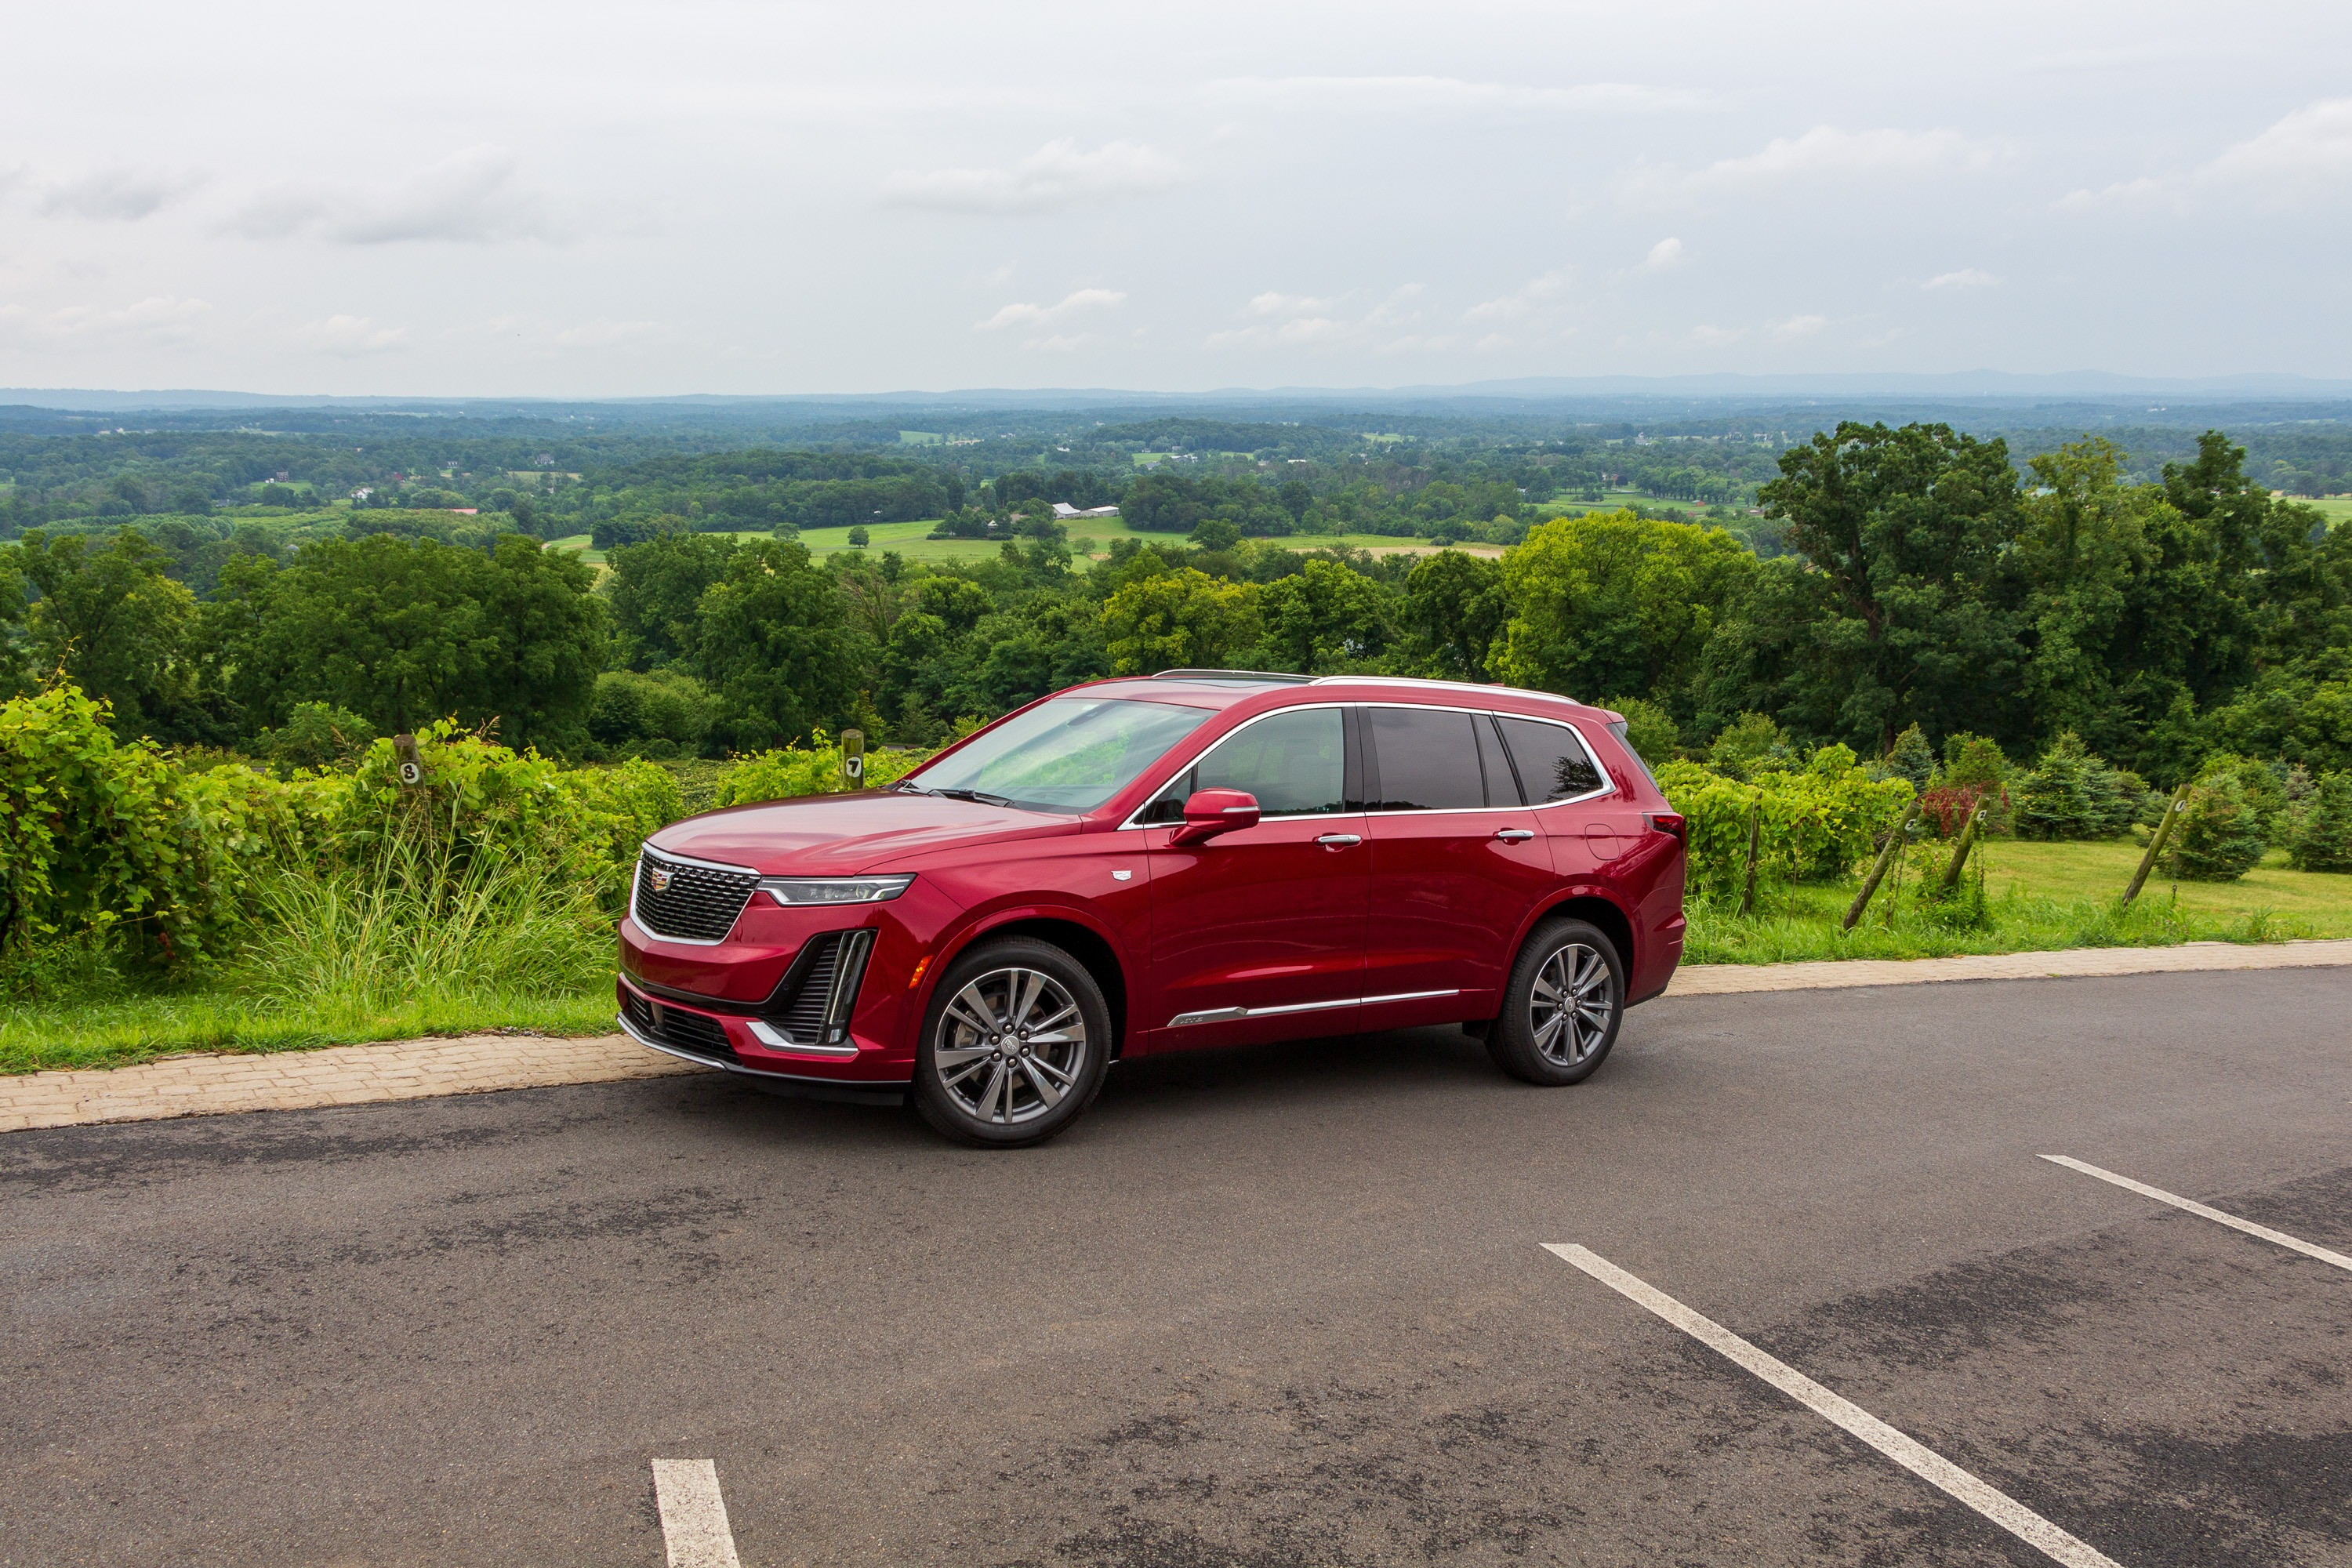 First Drive: 2020 Cadillac XT6 - GM Inside News